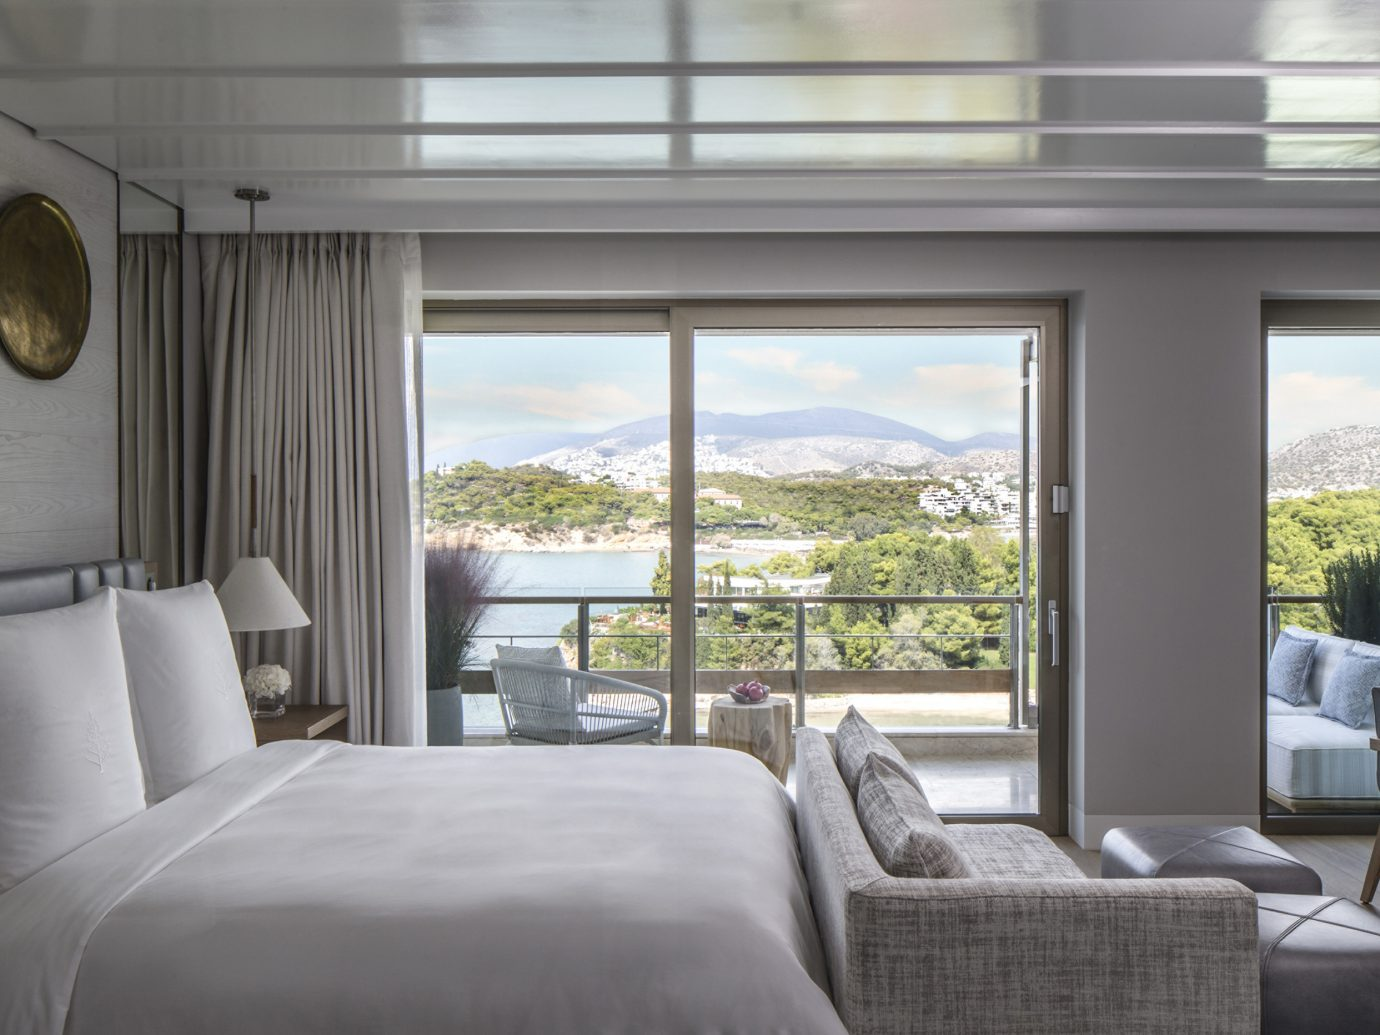 Bedroom view at Four Seasons Astir Palace